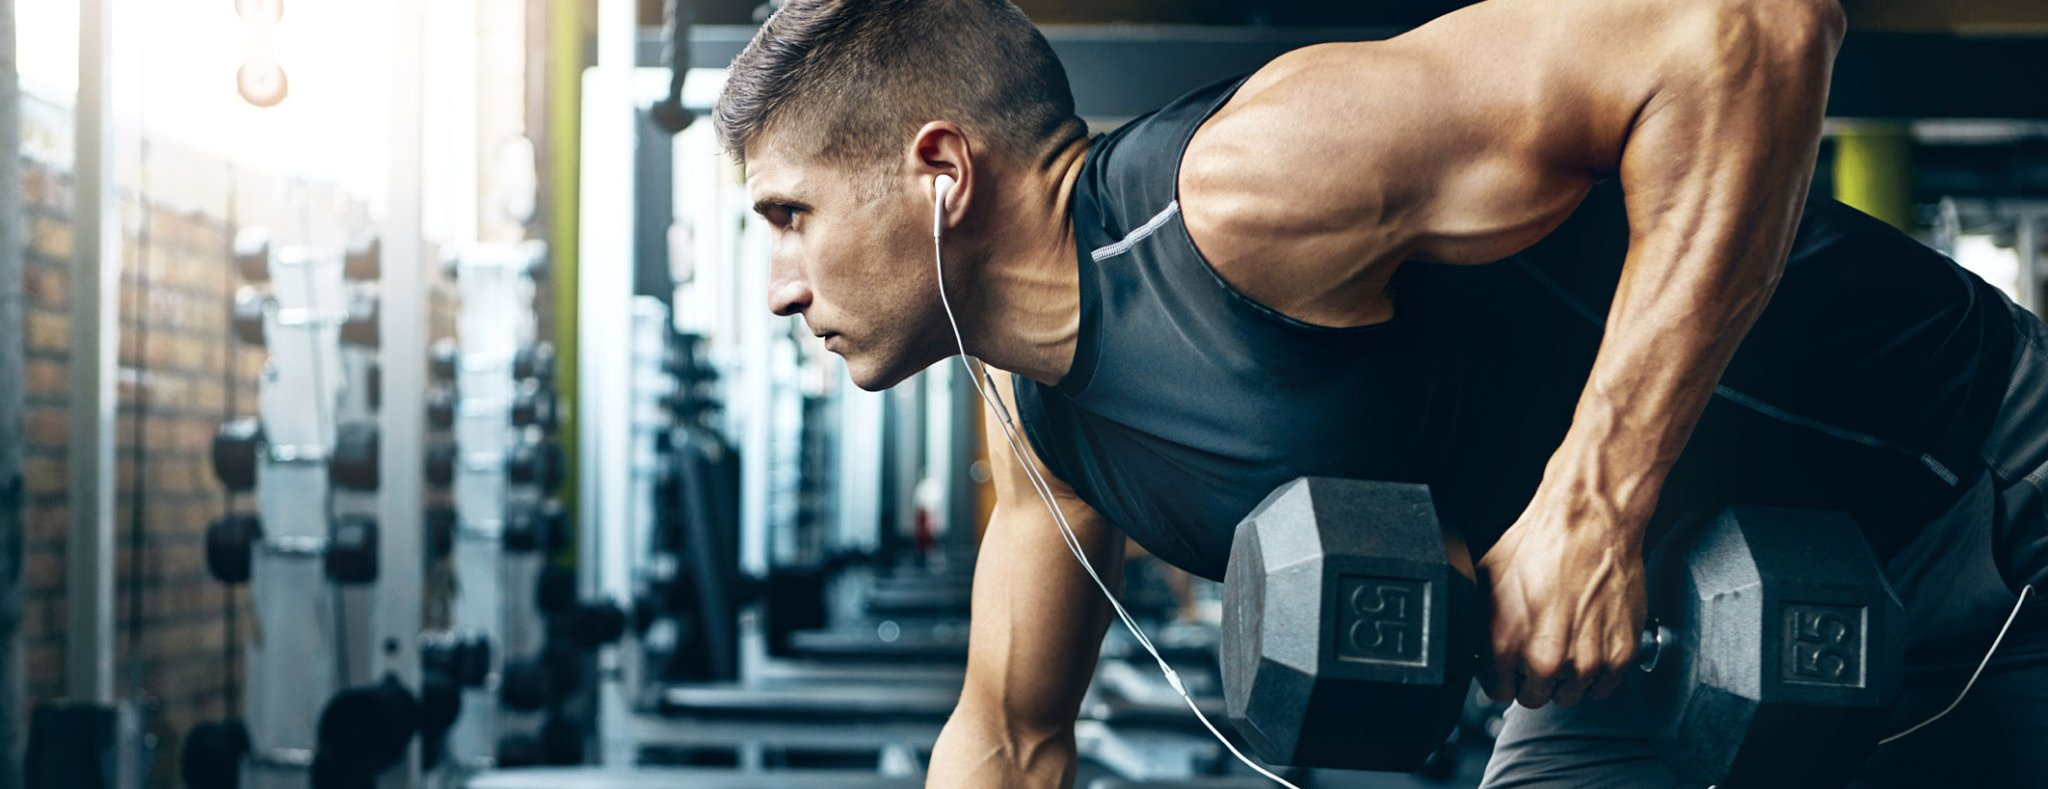 Train Your Arms 1-2 Times a Week